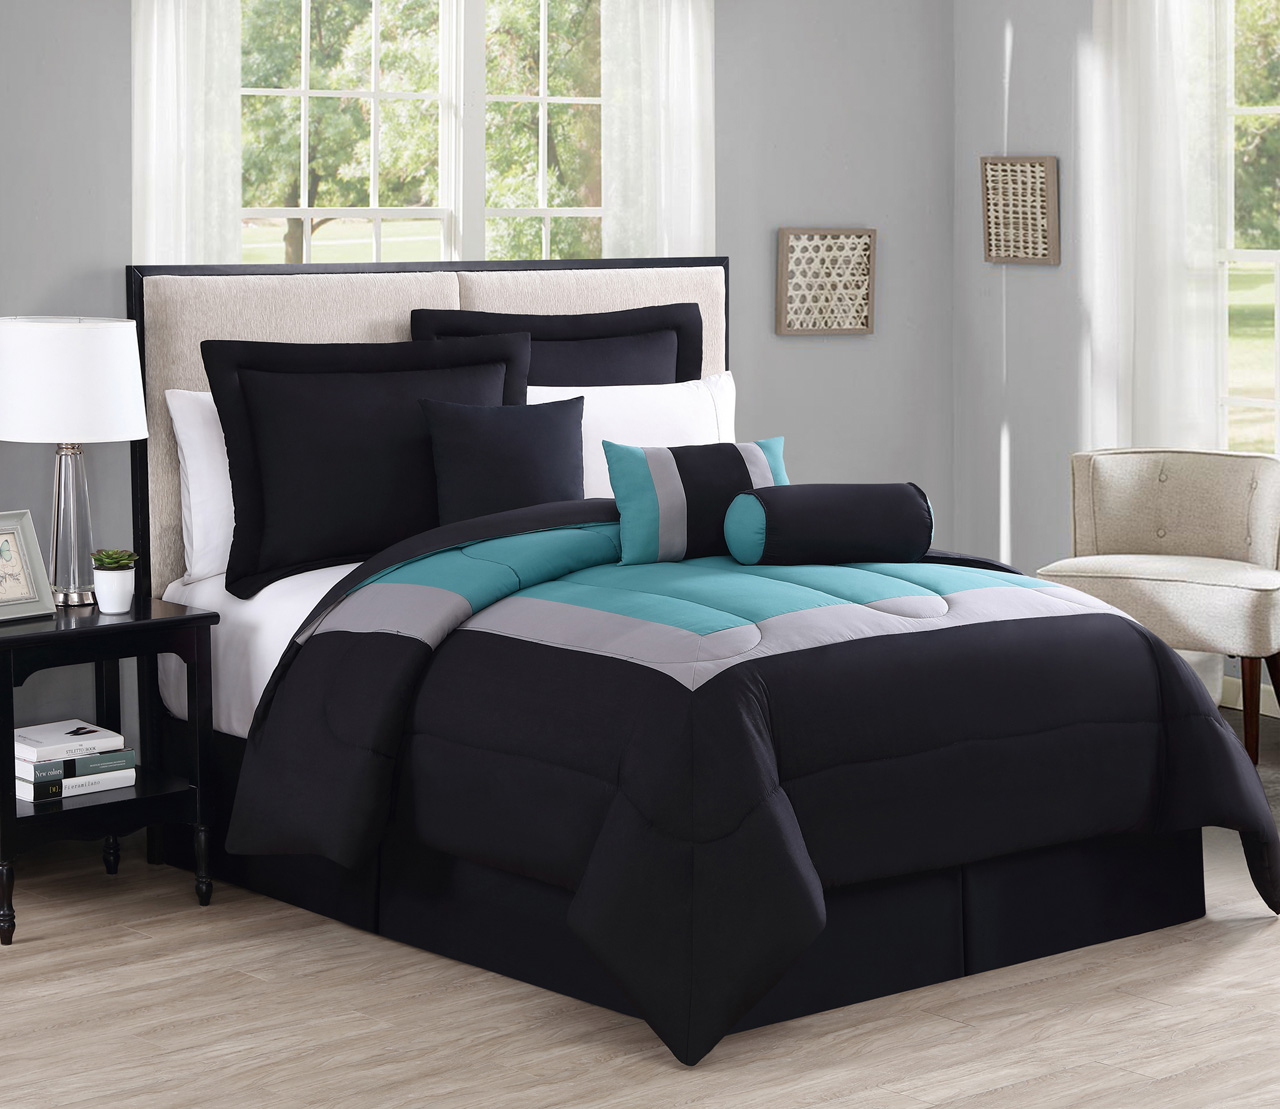 Piece Rosslyn BlackTeal Comforter Set - Black and teal comforter sets